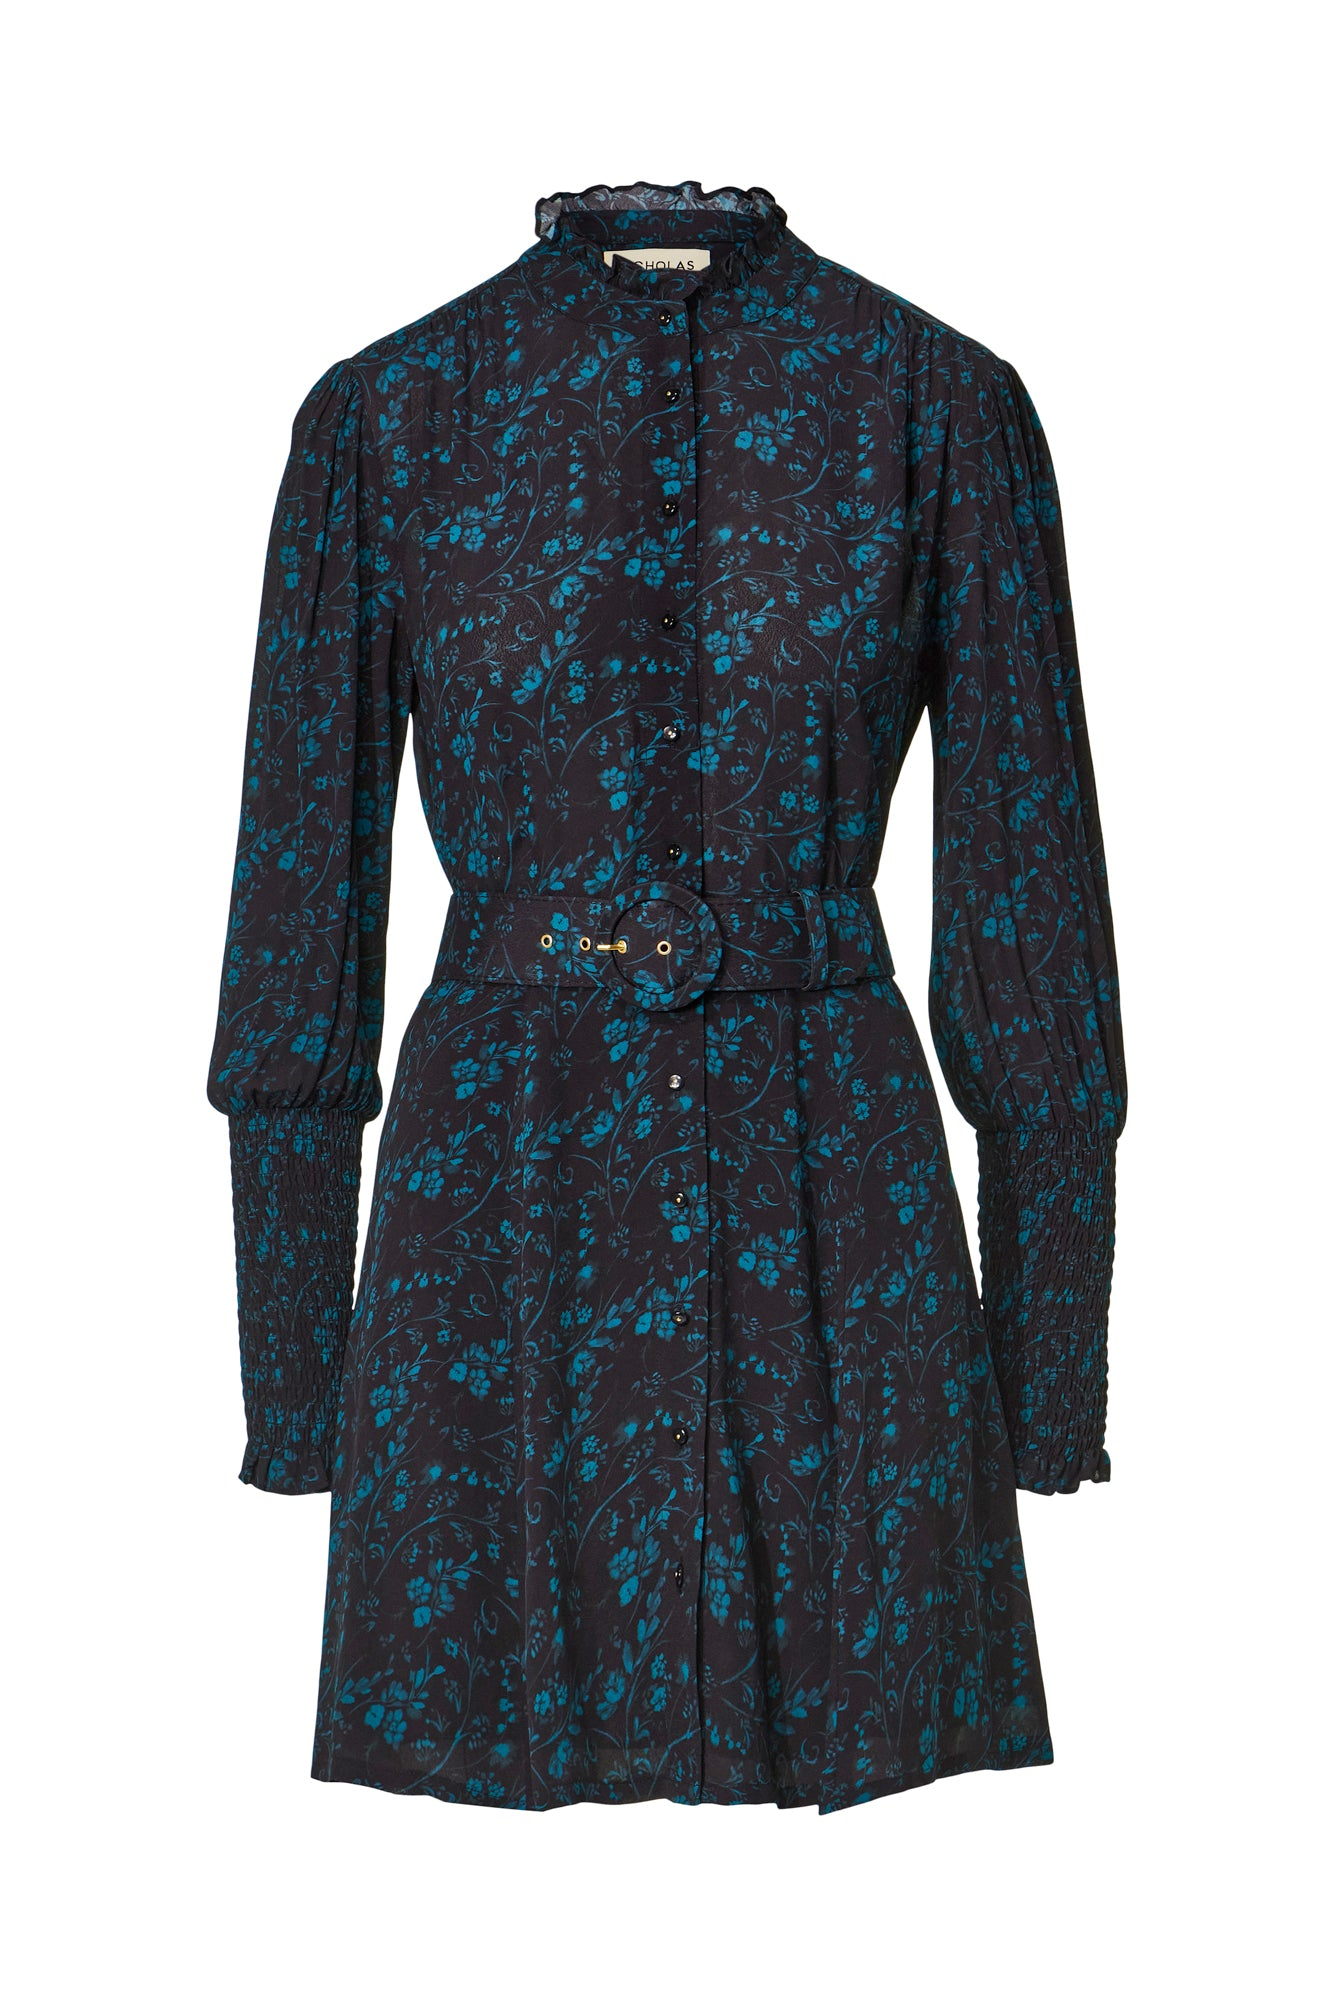 Agadir Dress - Watercolor Ditsy Floral Peacock